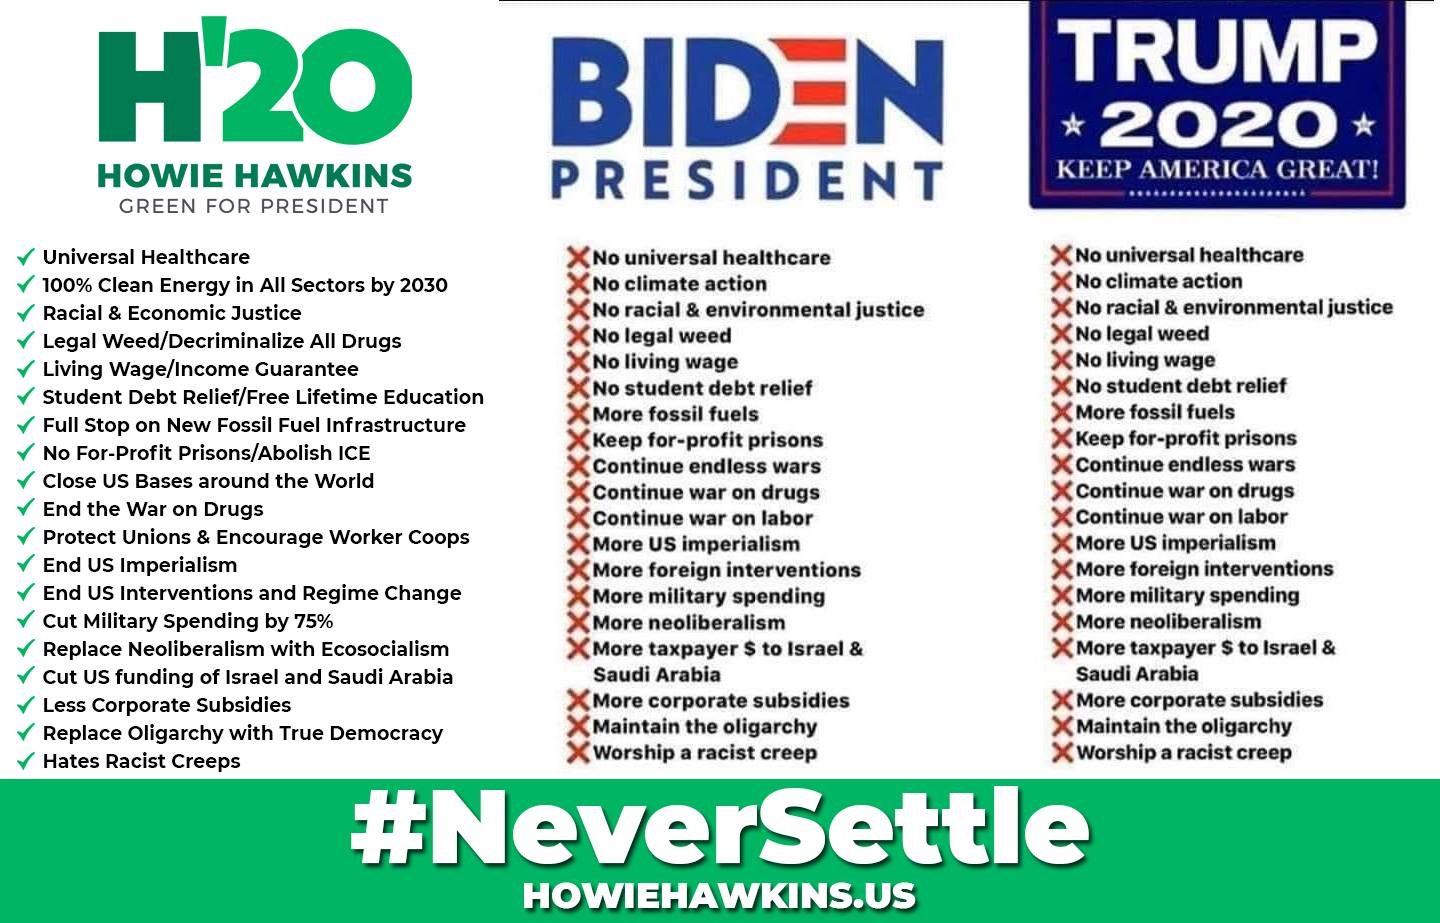 A three columned chart comparing Howie Hawkins with Biden & Trump